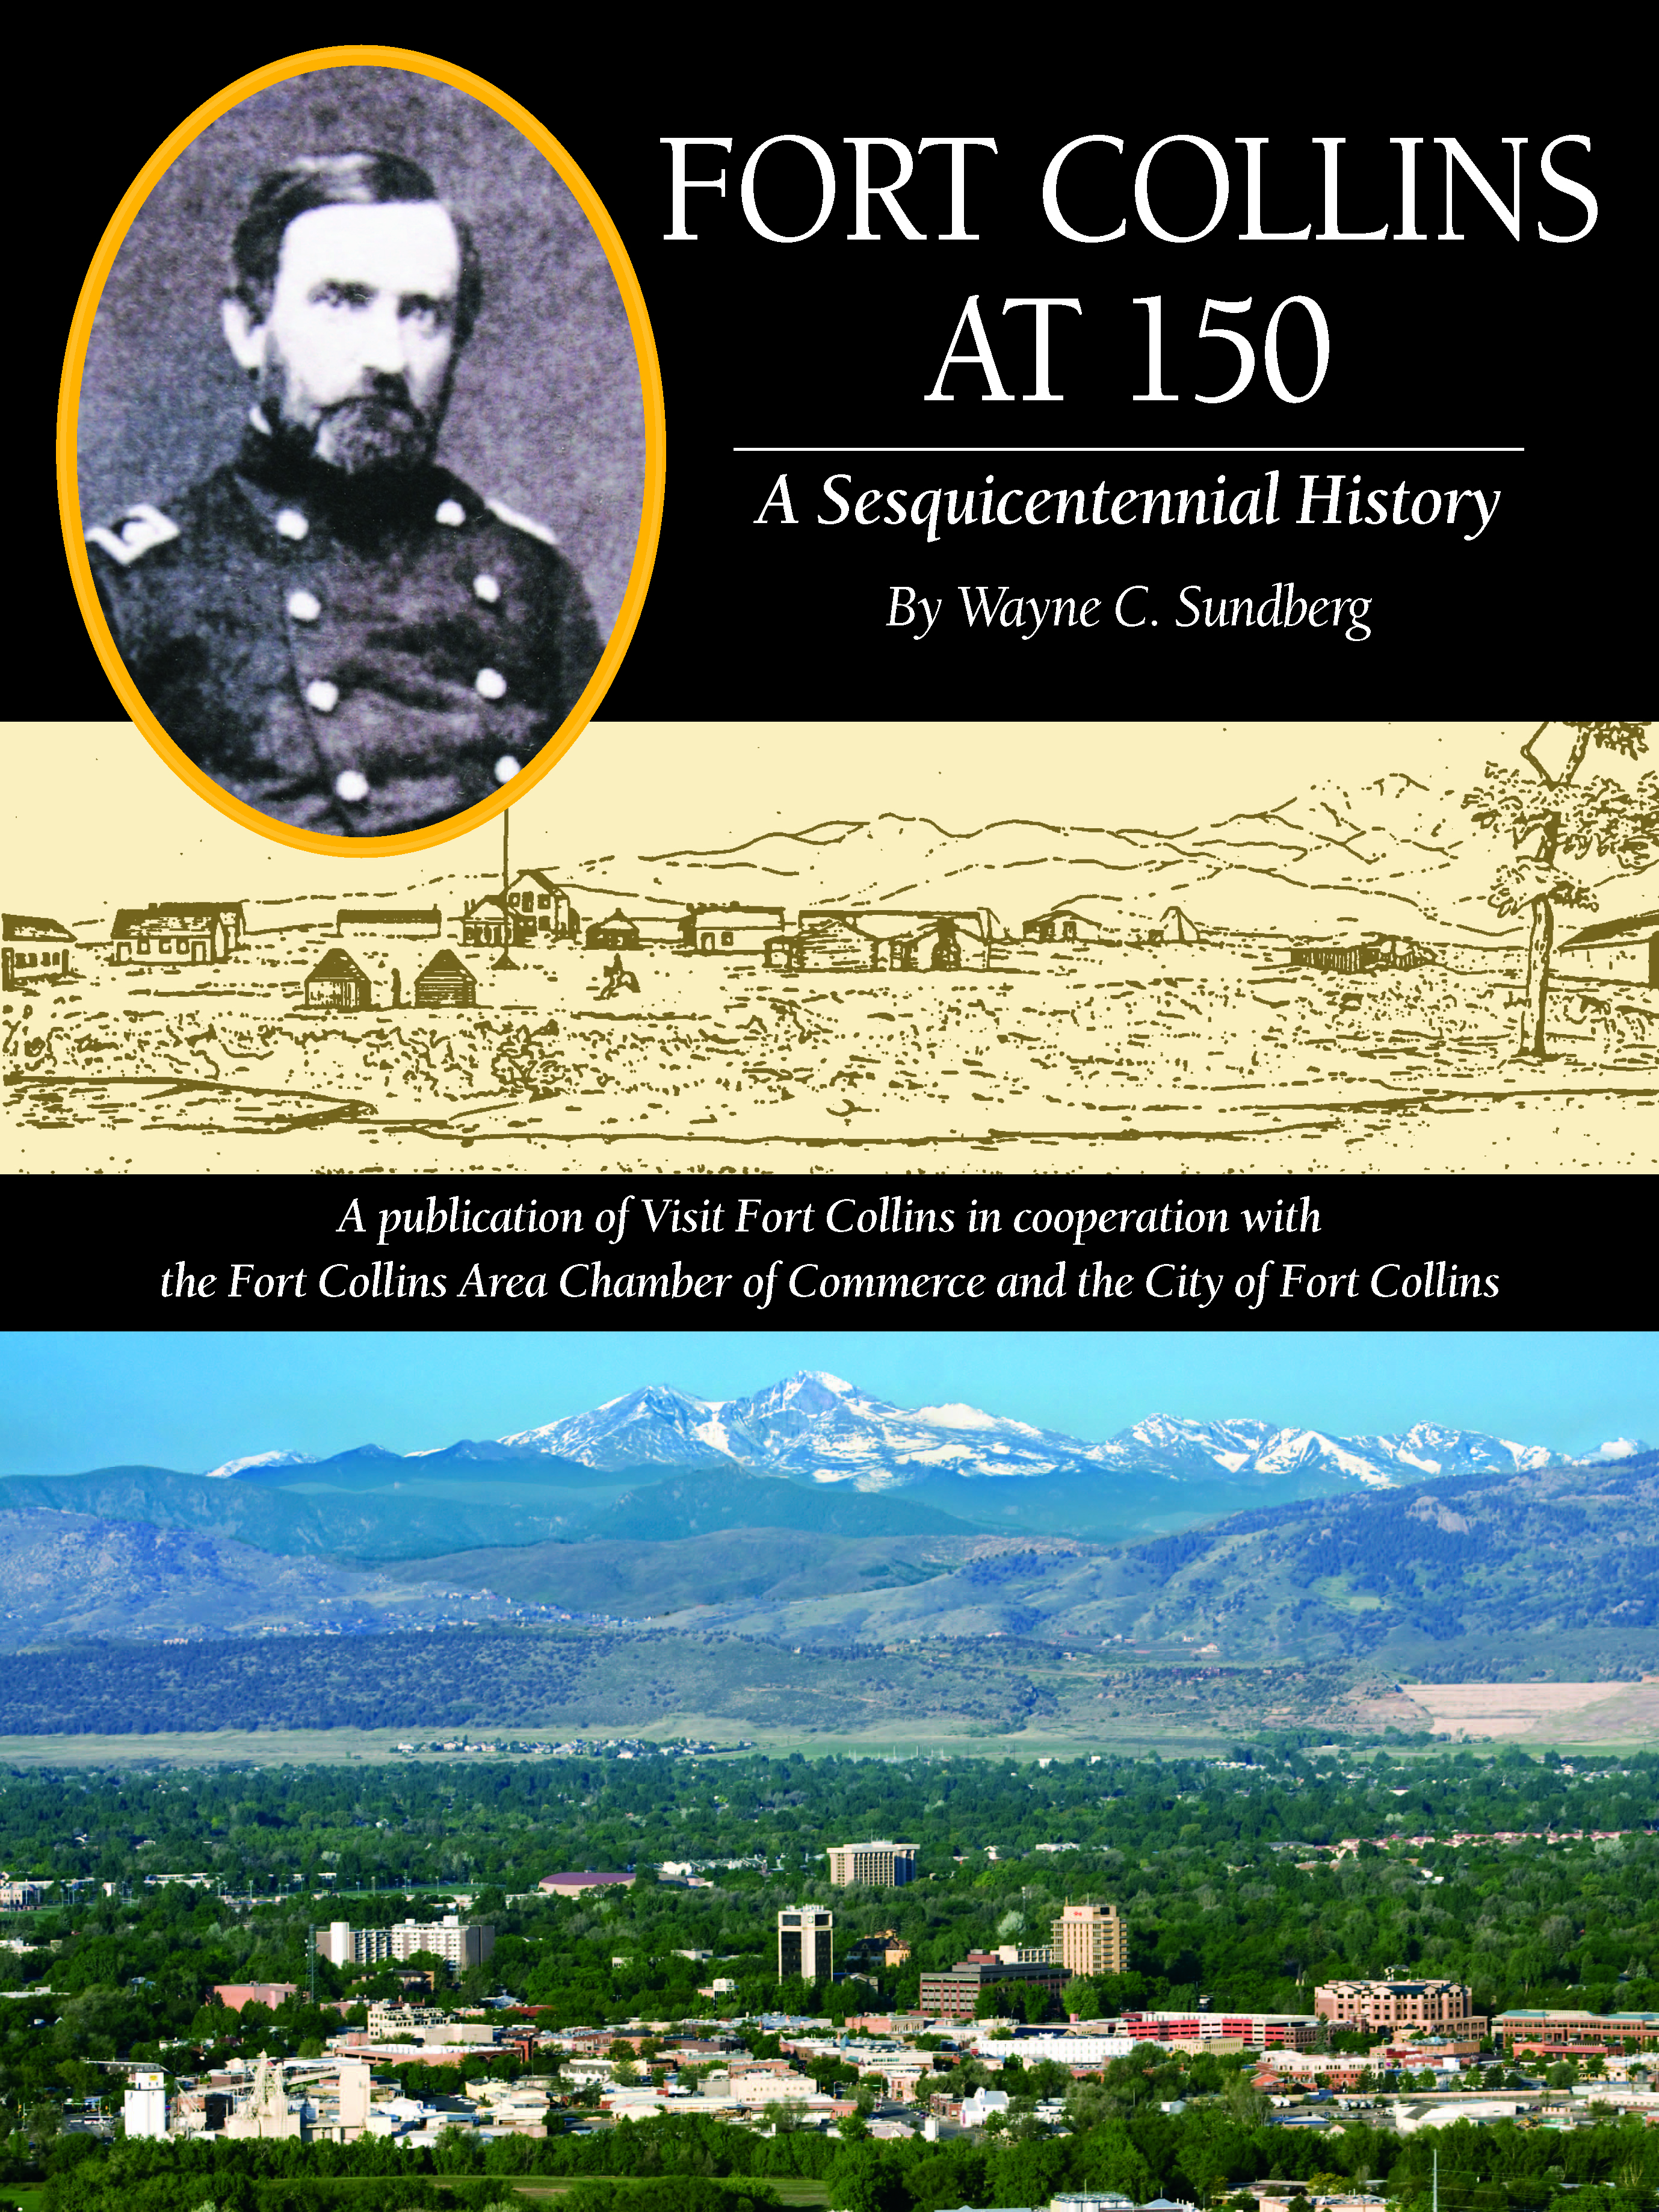 Fort Collins at 150 - A Sesquicentennial History